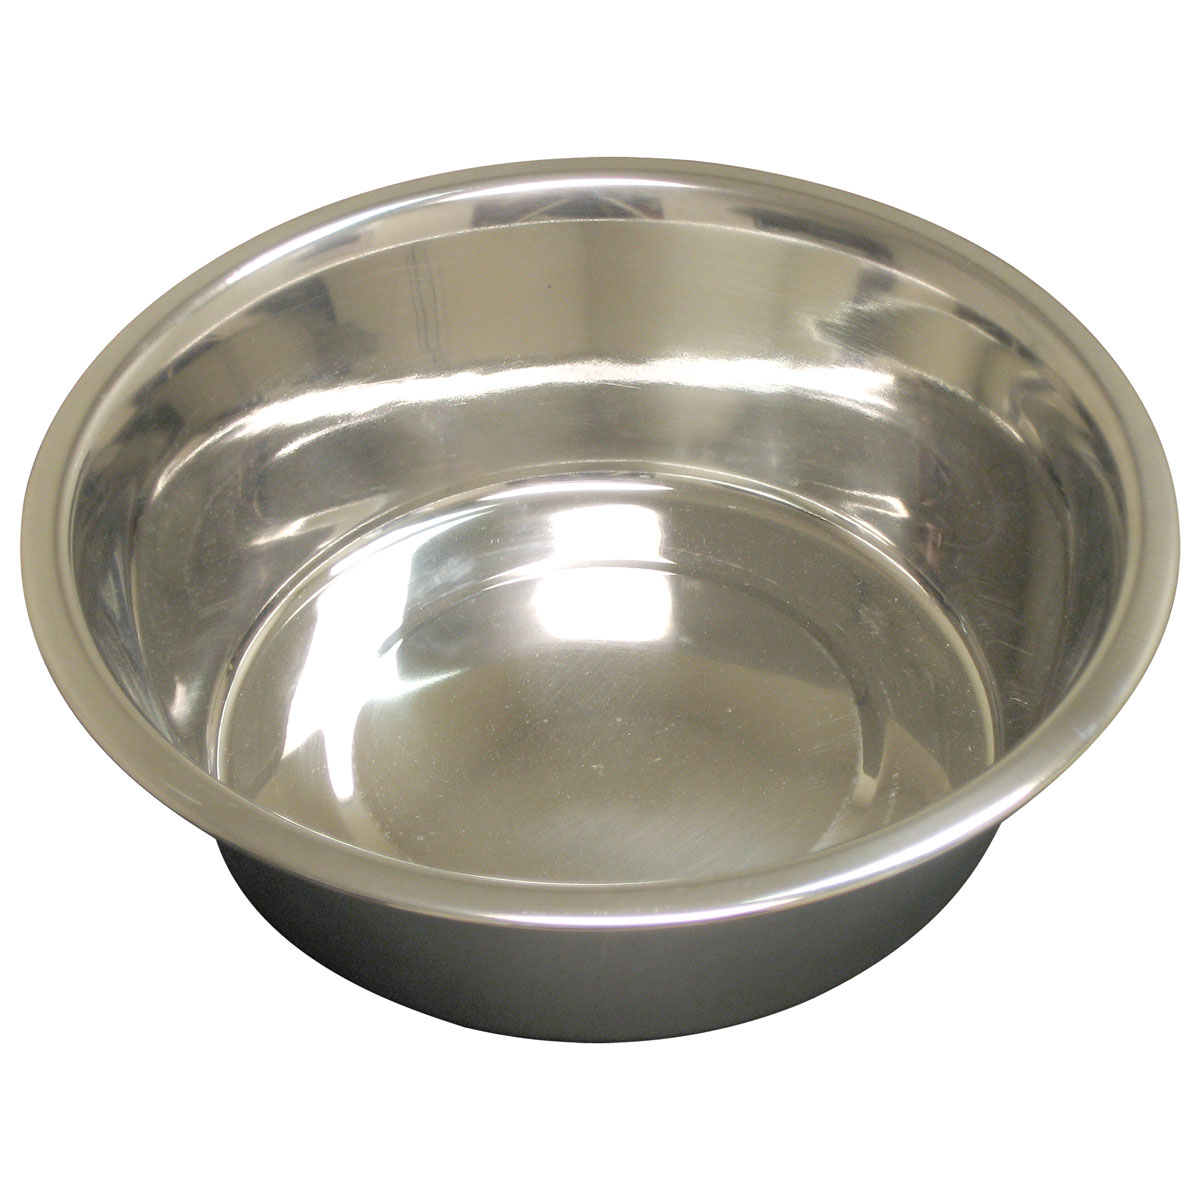 QT Dog - Standard SS Food Bowl